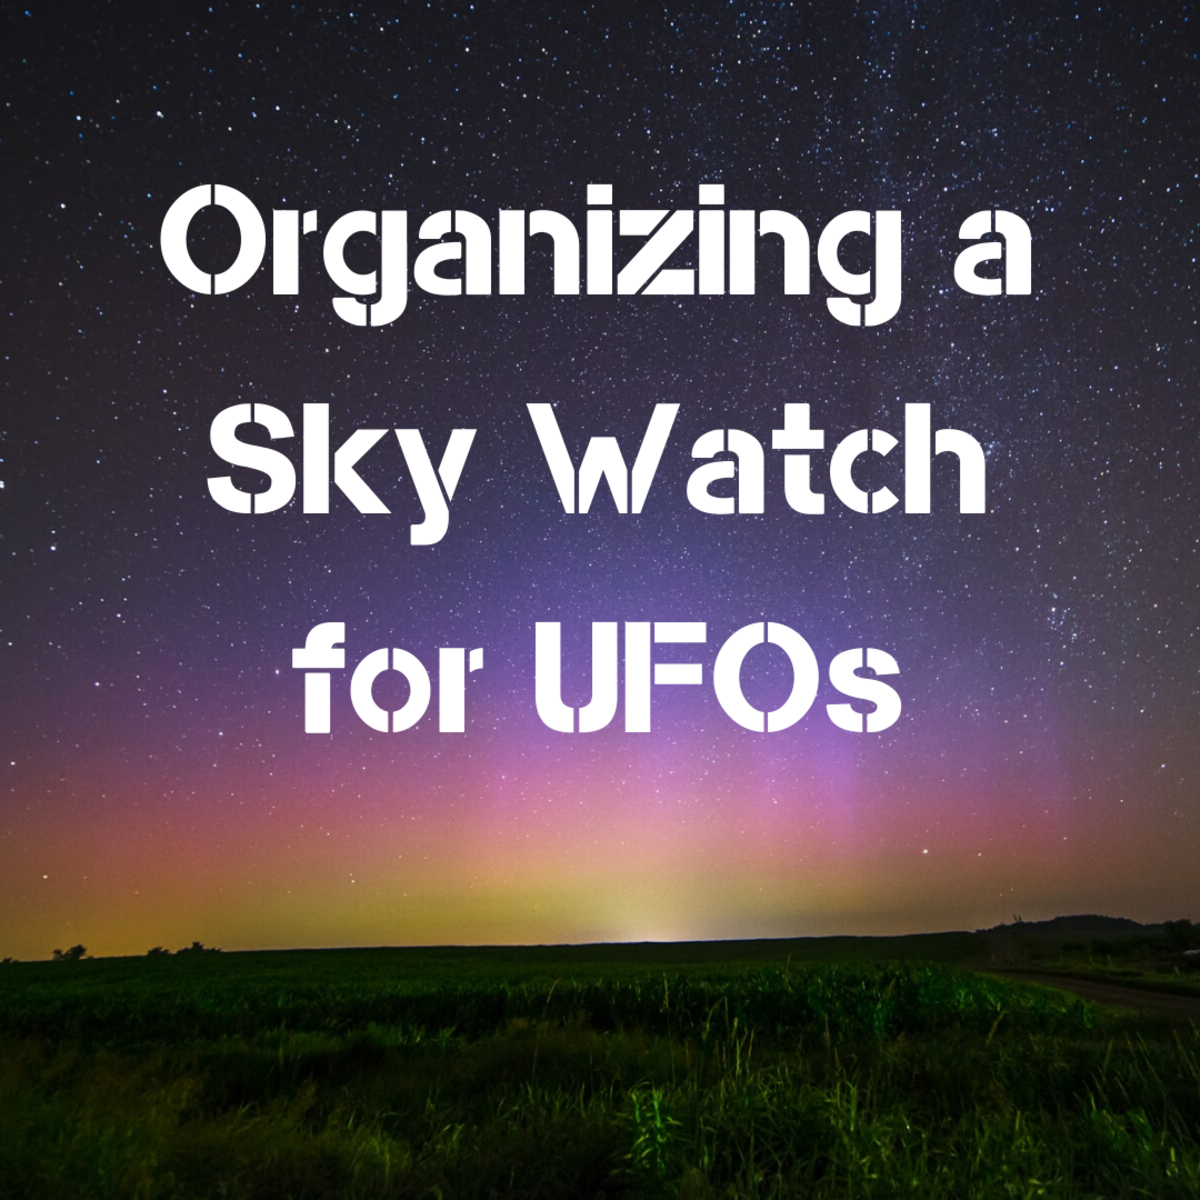 Find tips for setting up a sky watch either alone or with friends, such as how to choose a location and what to bring with you.